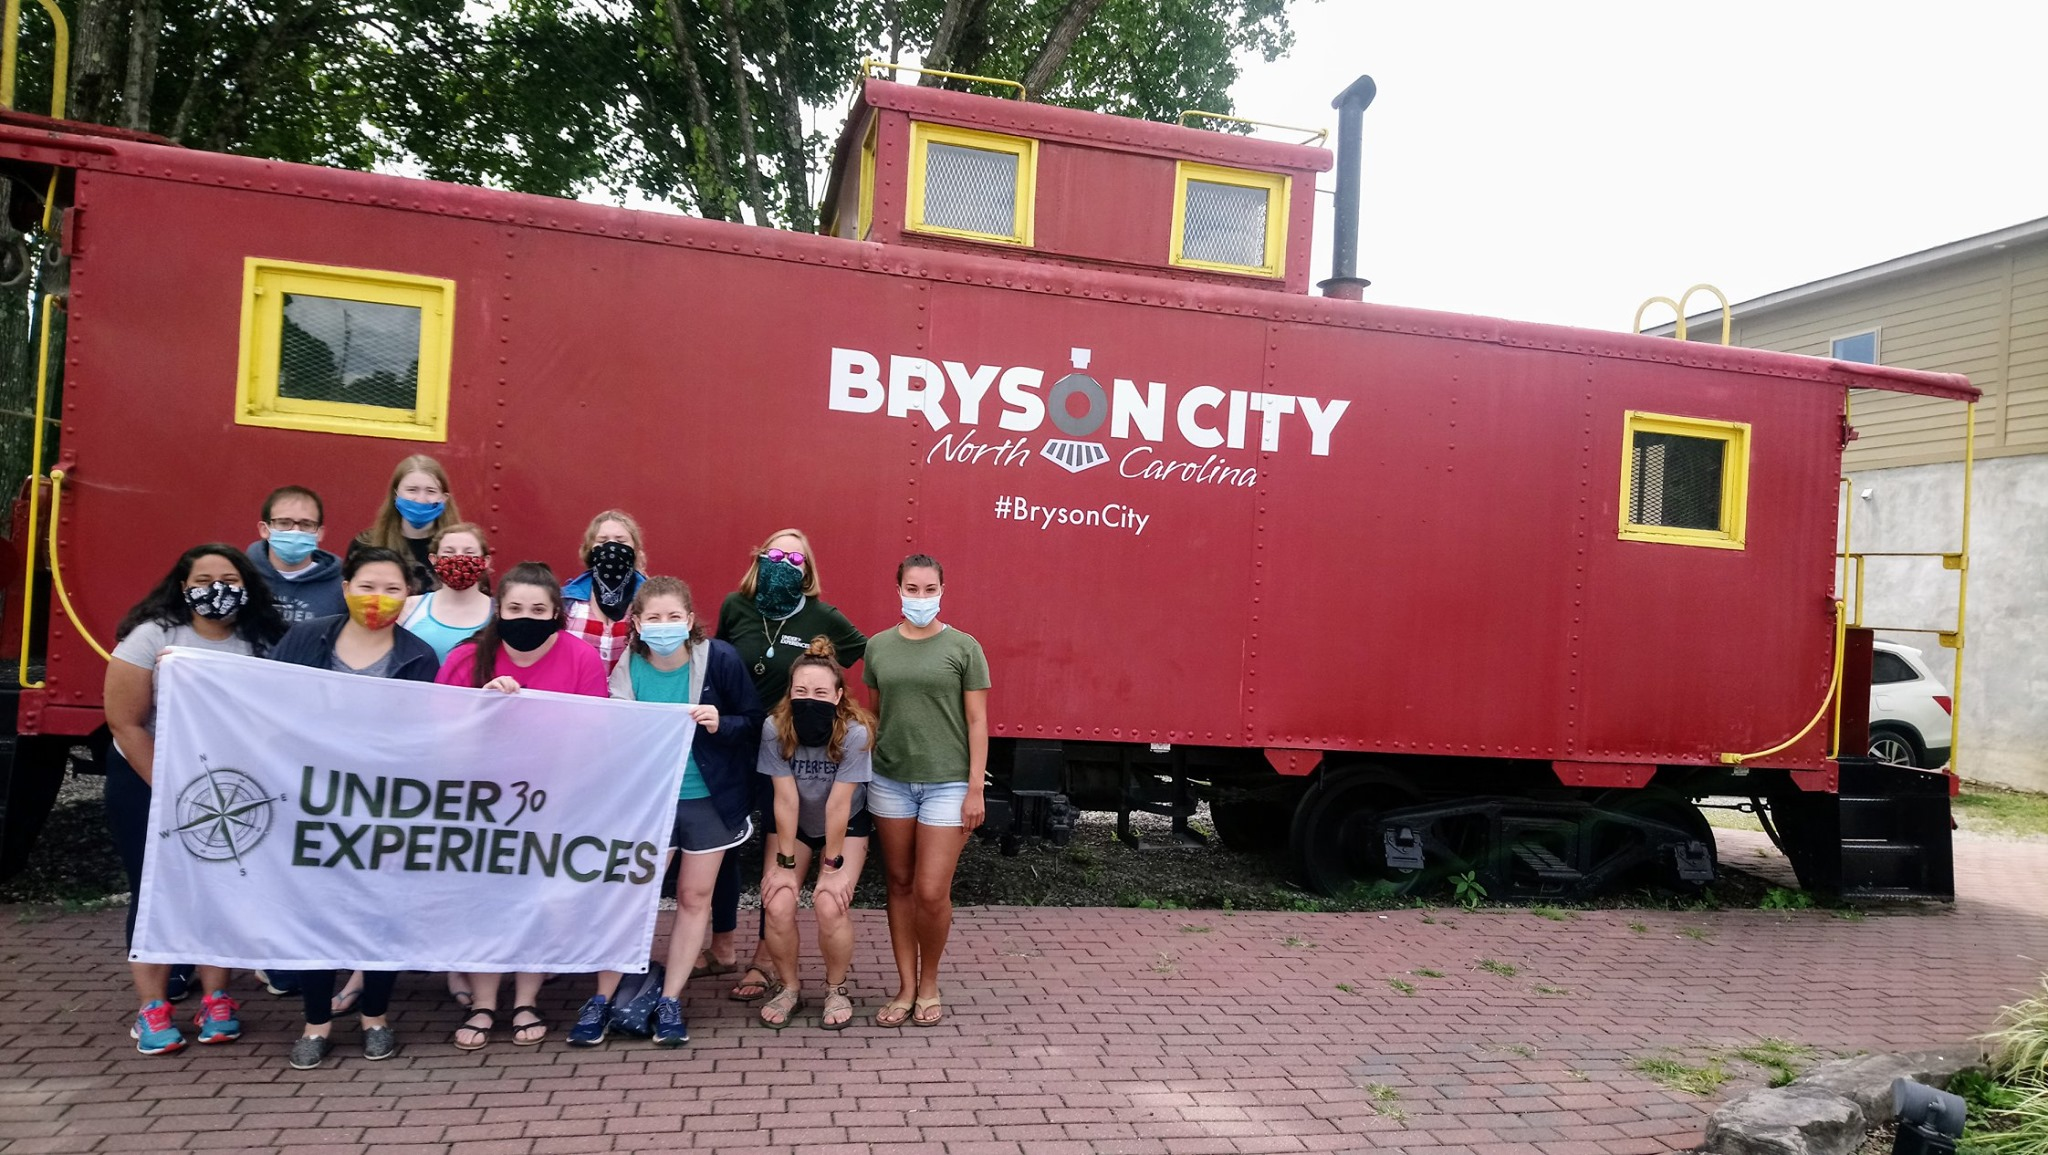 Top 5 Things to do in Bryson City, North Carolina